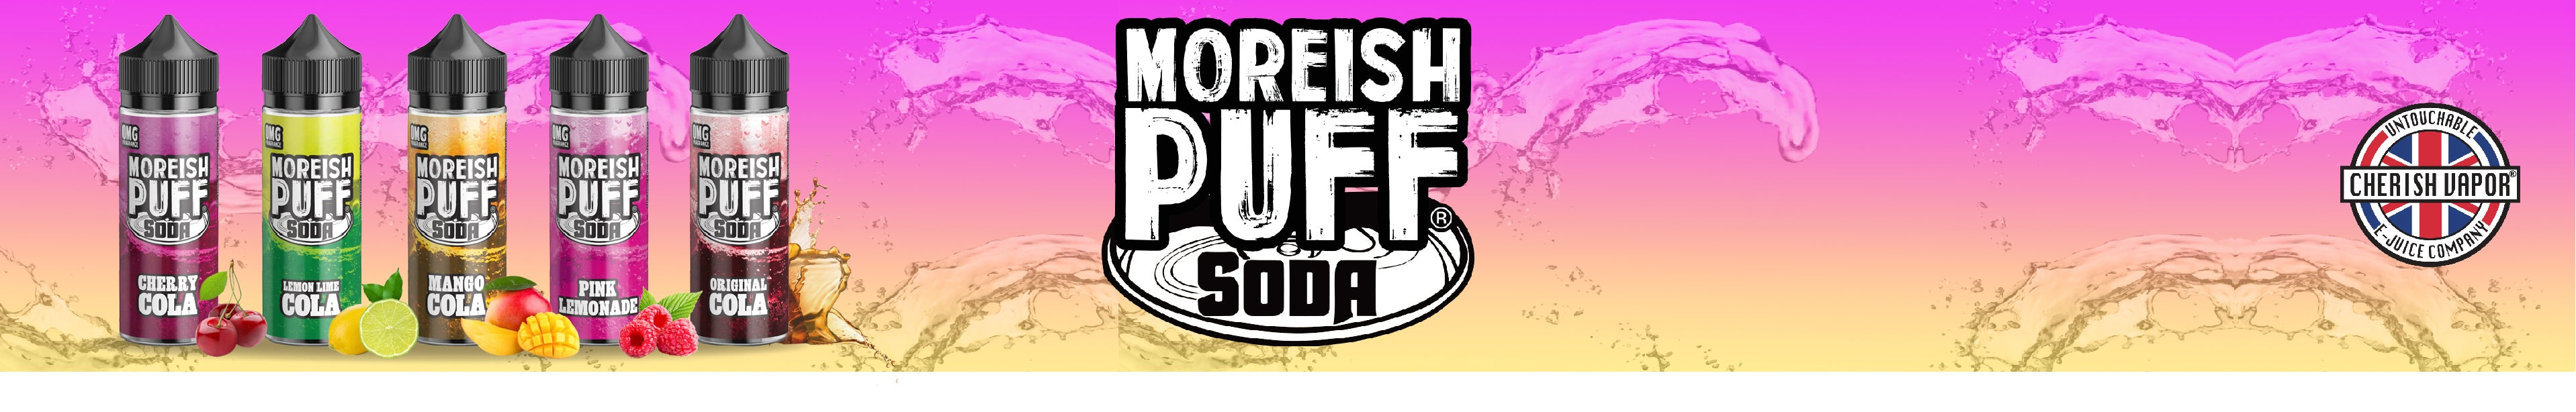 Moreish Puff Soda